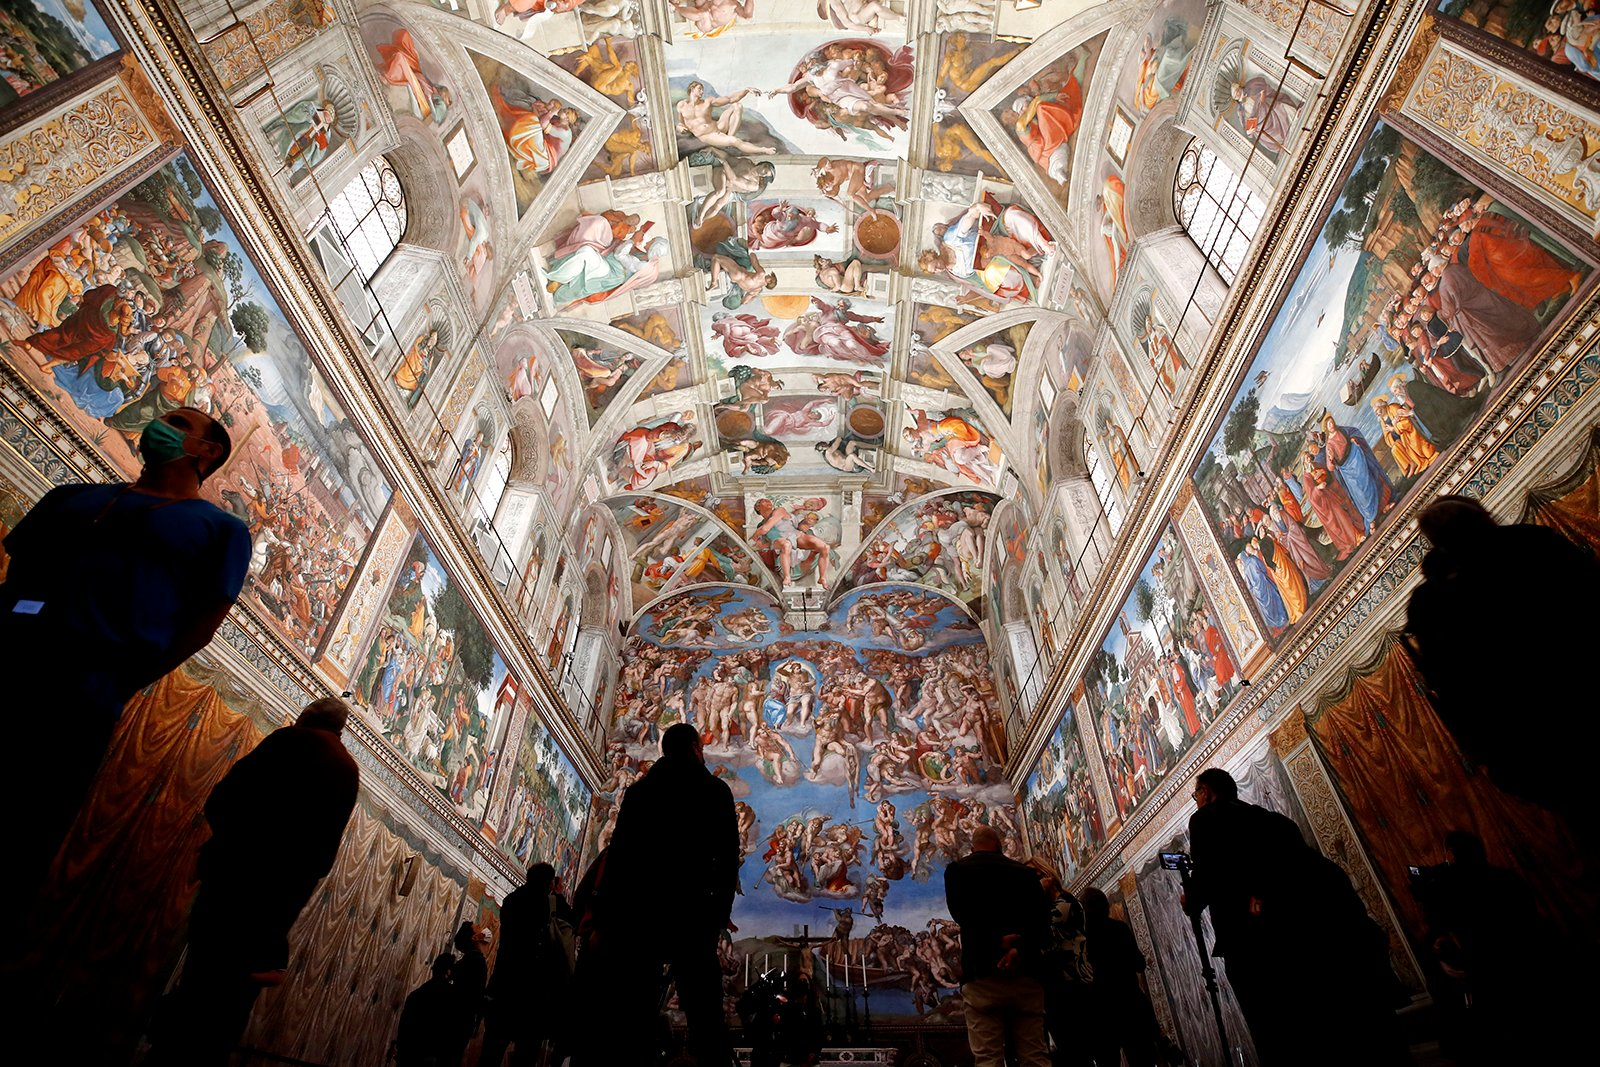 Visitors admire the Sistine Chapel inside the Vatican Museums on the occasion of the museum's reopening, in Rome, Monday, May 3, 2021. The Vatican Museums reopened Monday to visitors after a shutdown following COVID-19 containment measures. (AP Photo/Alessandra Tarantino)